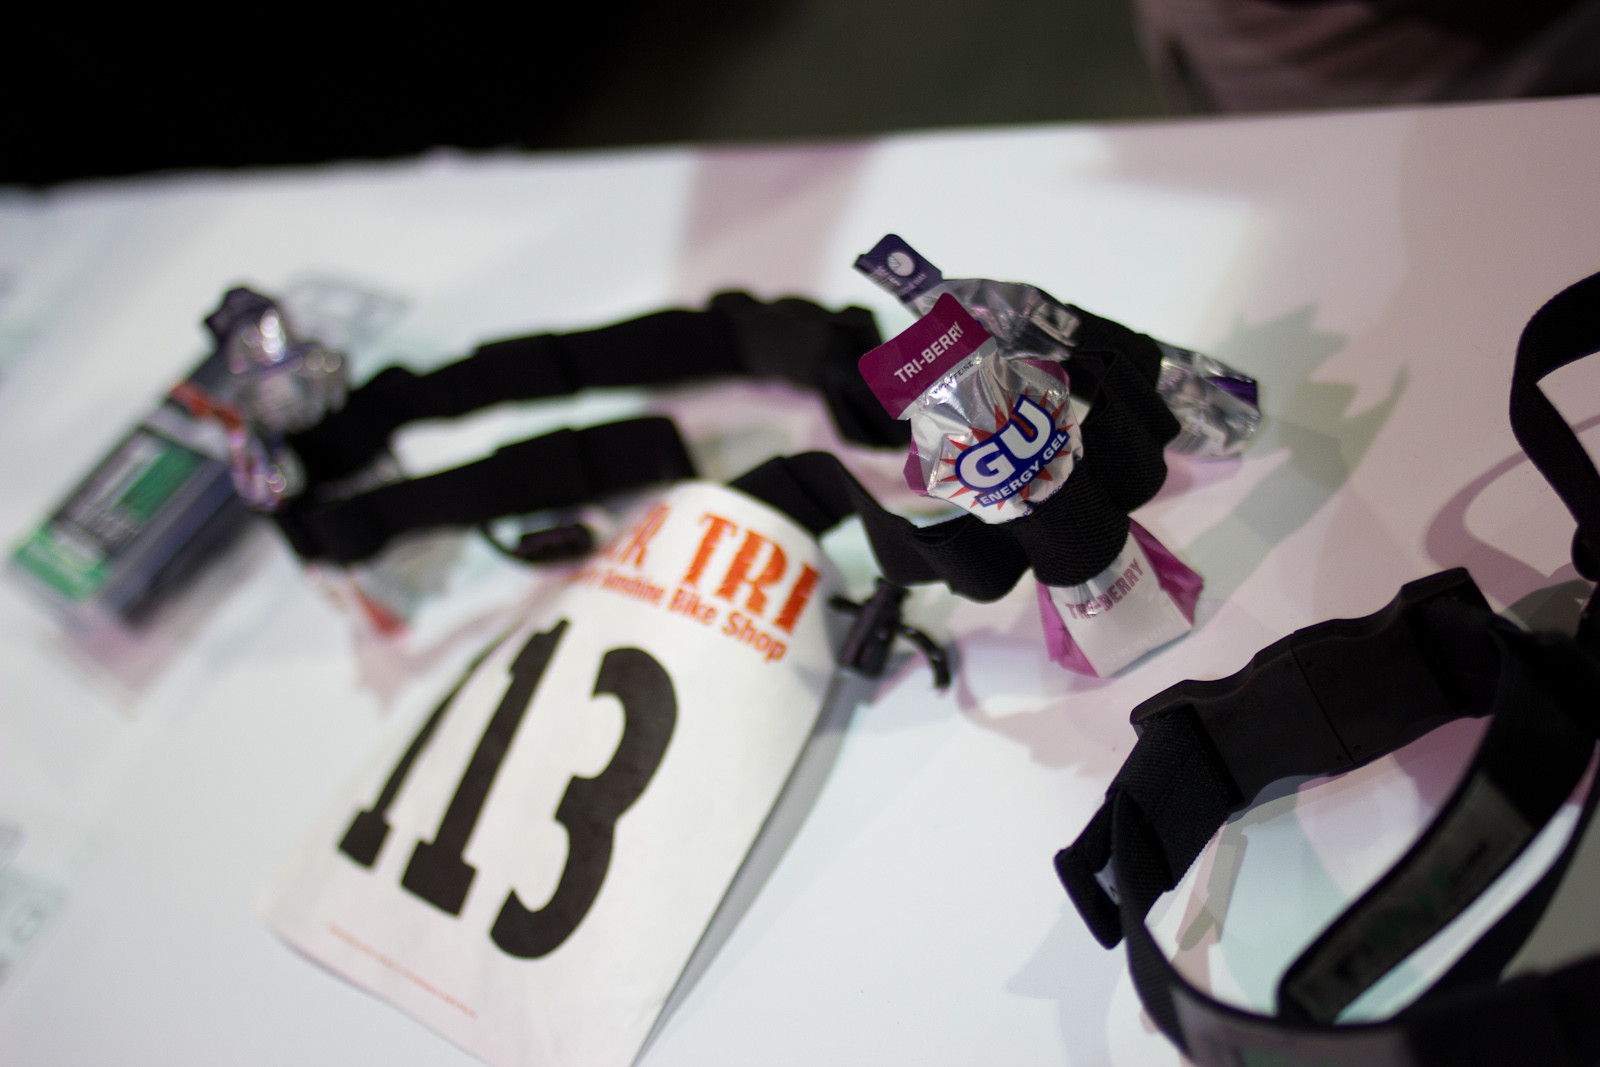 Silly Triathletes - Random, Wacky, and Weird from Interbike 2012  - Mountain Biking Pictures - Vital MTB